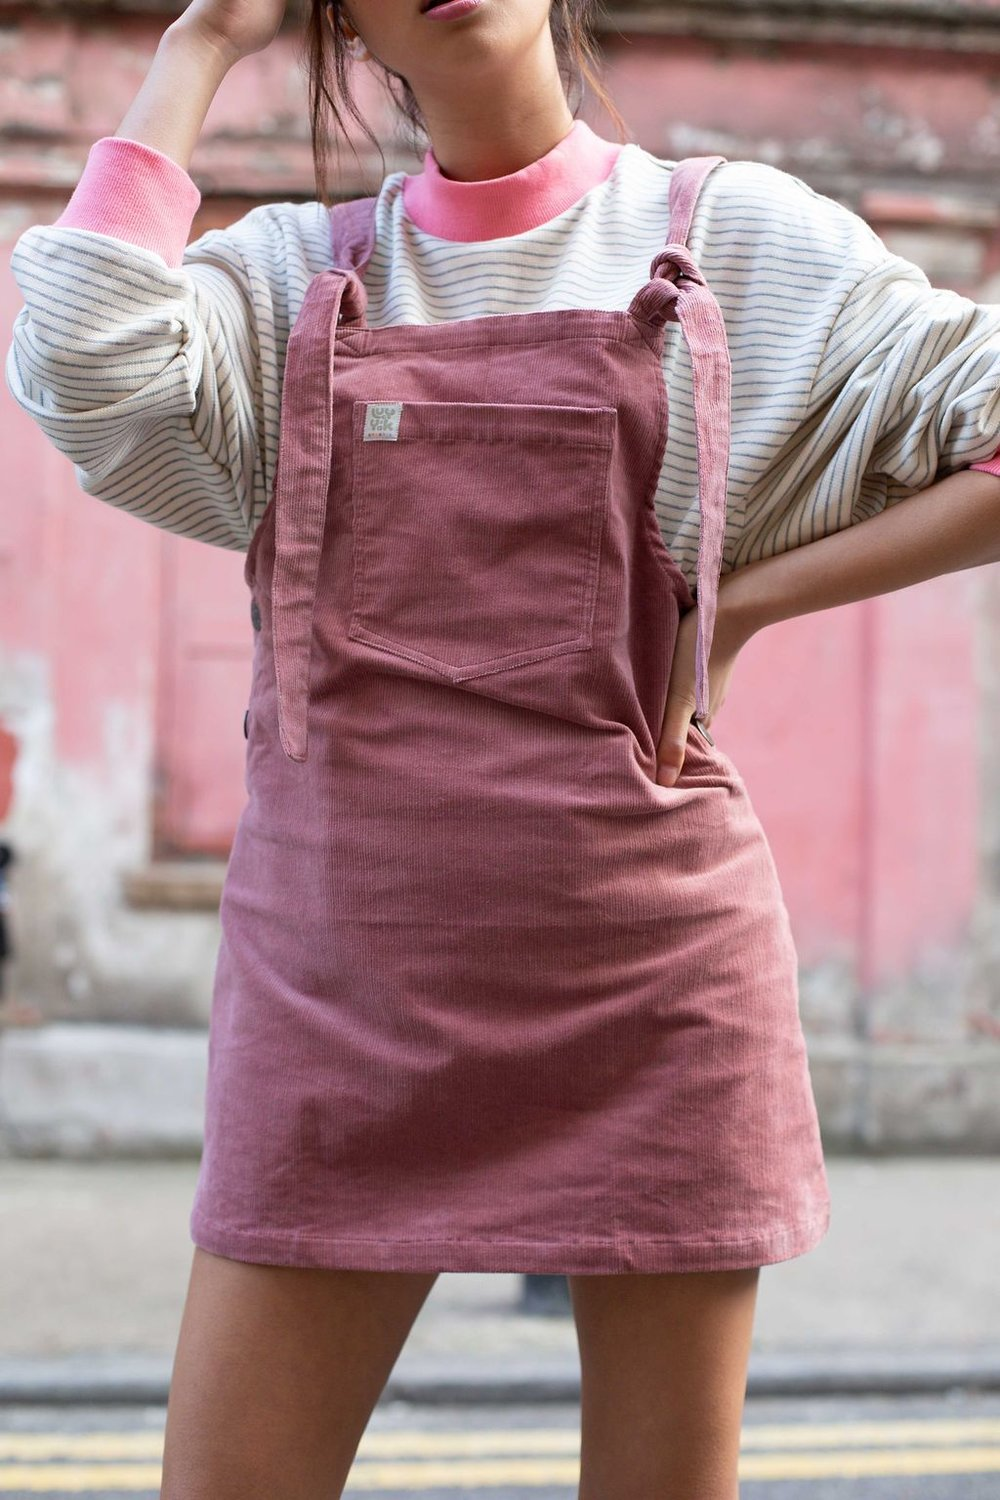 'Organic Mini Pini' Corduroy Dress in Ash Pink, Lucy & Yak